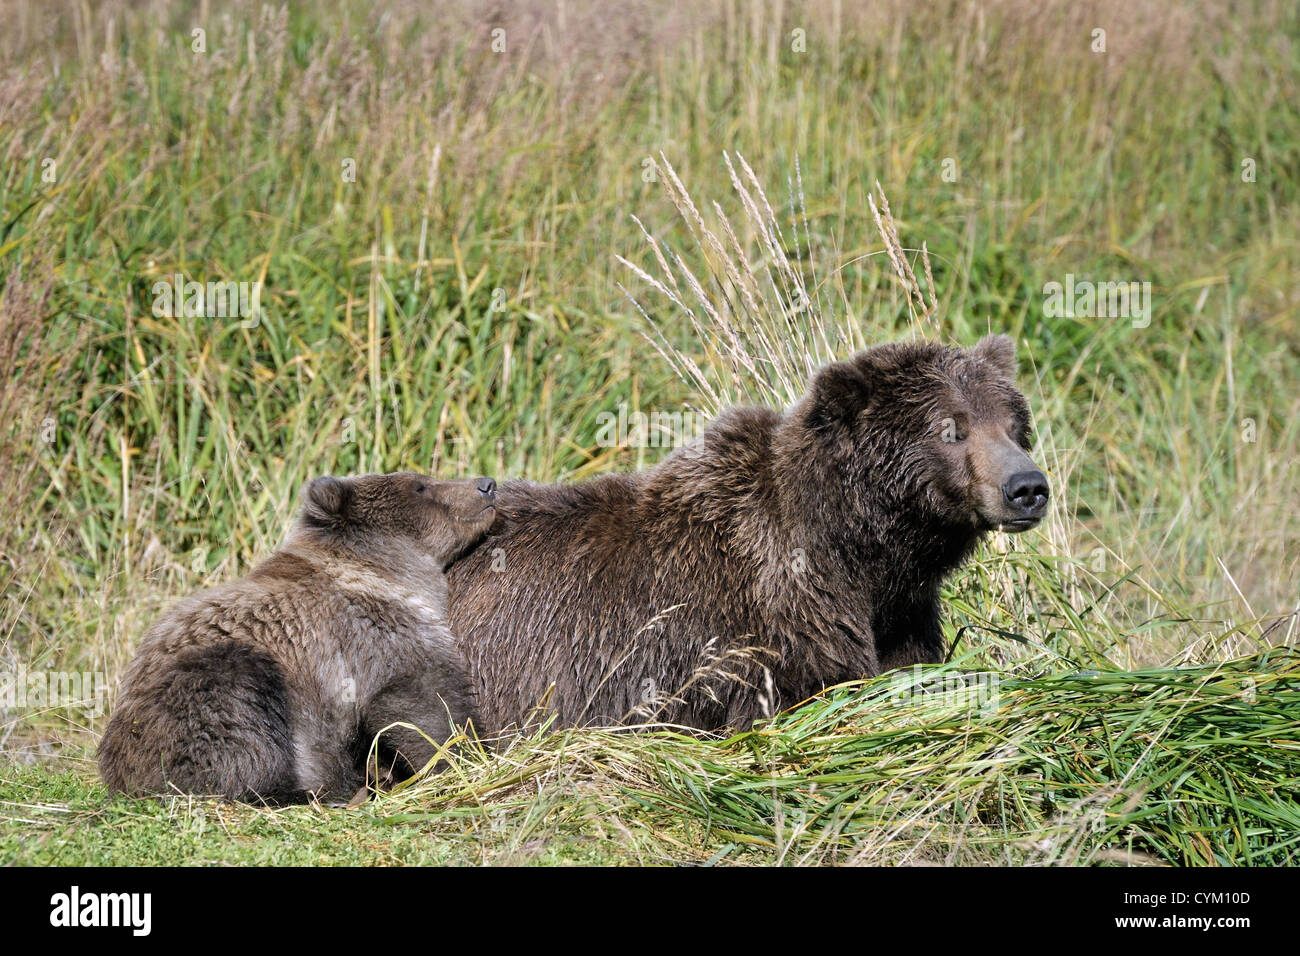 Grizzly Bear mother sleeping with cub. - Stock Image